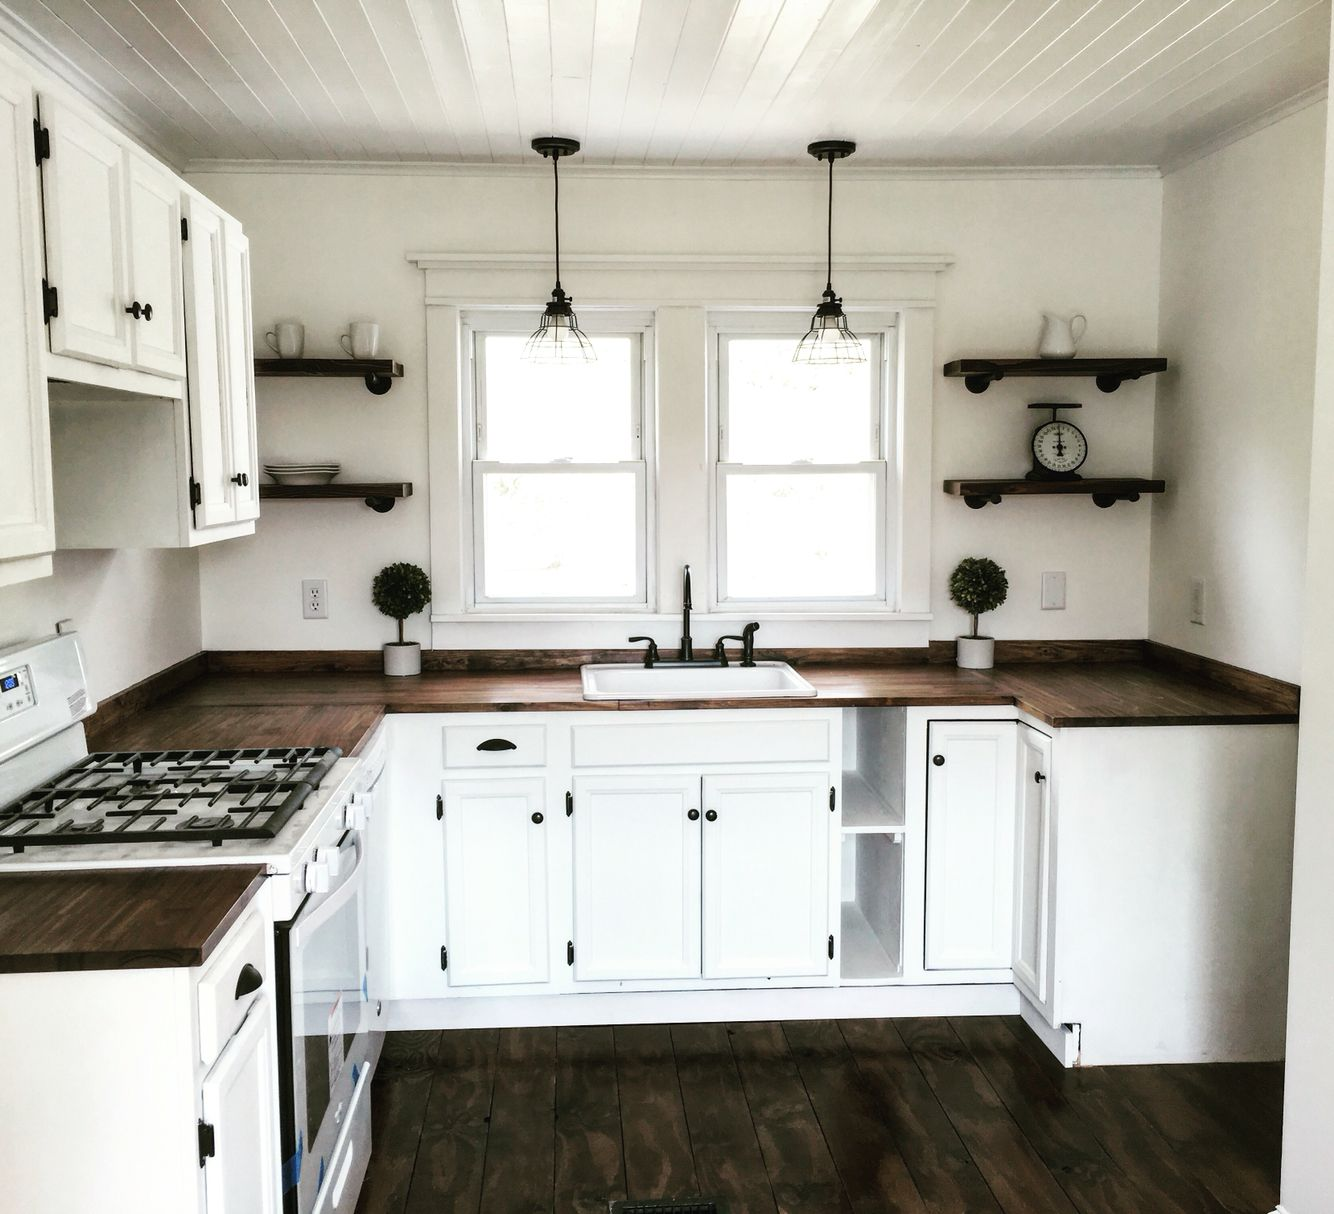 b64f4b24c04a77354f2cbc14d350303c Painted Floor Ideas Country Kitchen on country rustic kitchen floor, chic country kitchen brick floor, country painted cabinets, country kitchens with stone floors, french country kitchen floor, country painted windows,